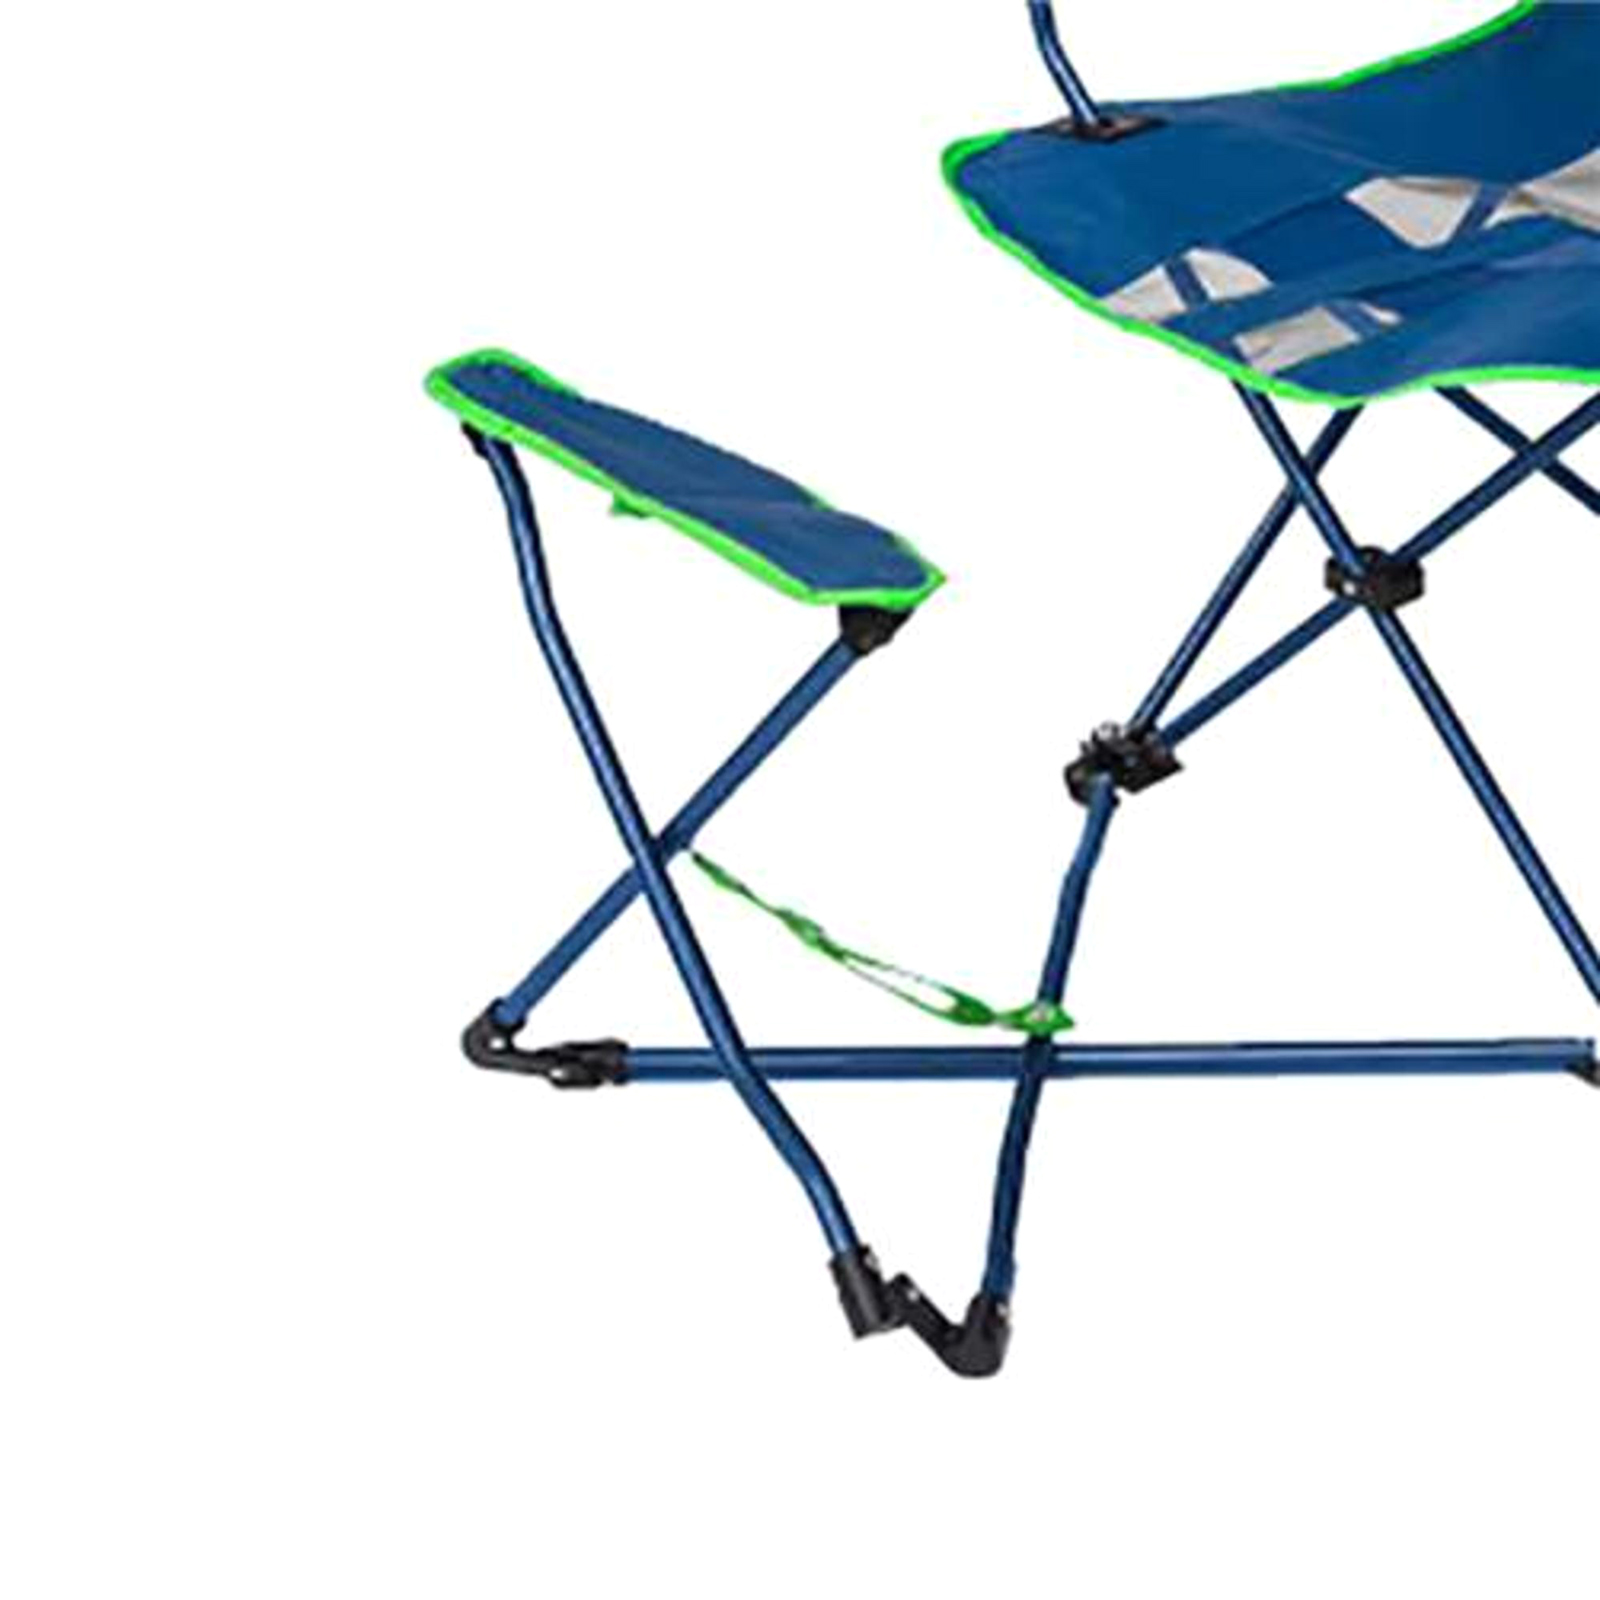 Camping Chair With Canopy Swinways Kelsyus Camping Chair W Canopy And Ottoman Sears Marketplace